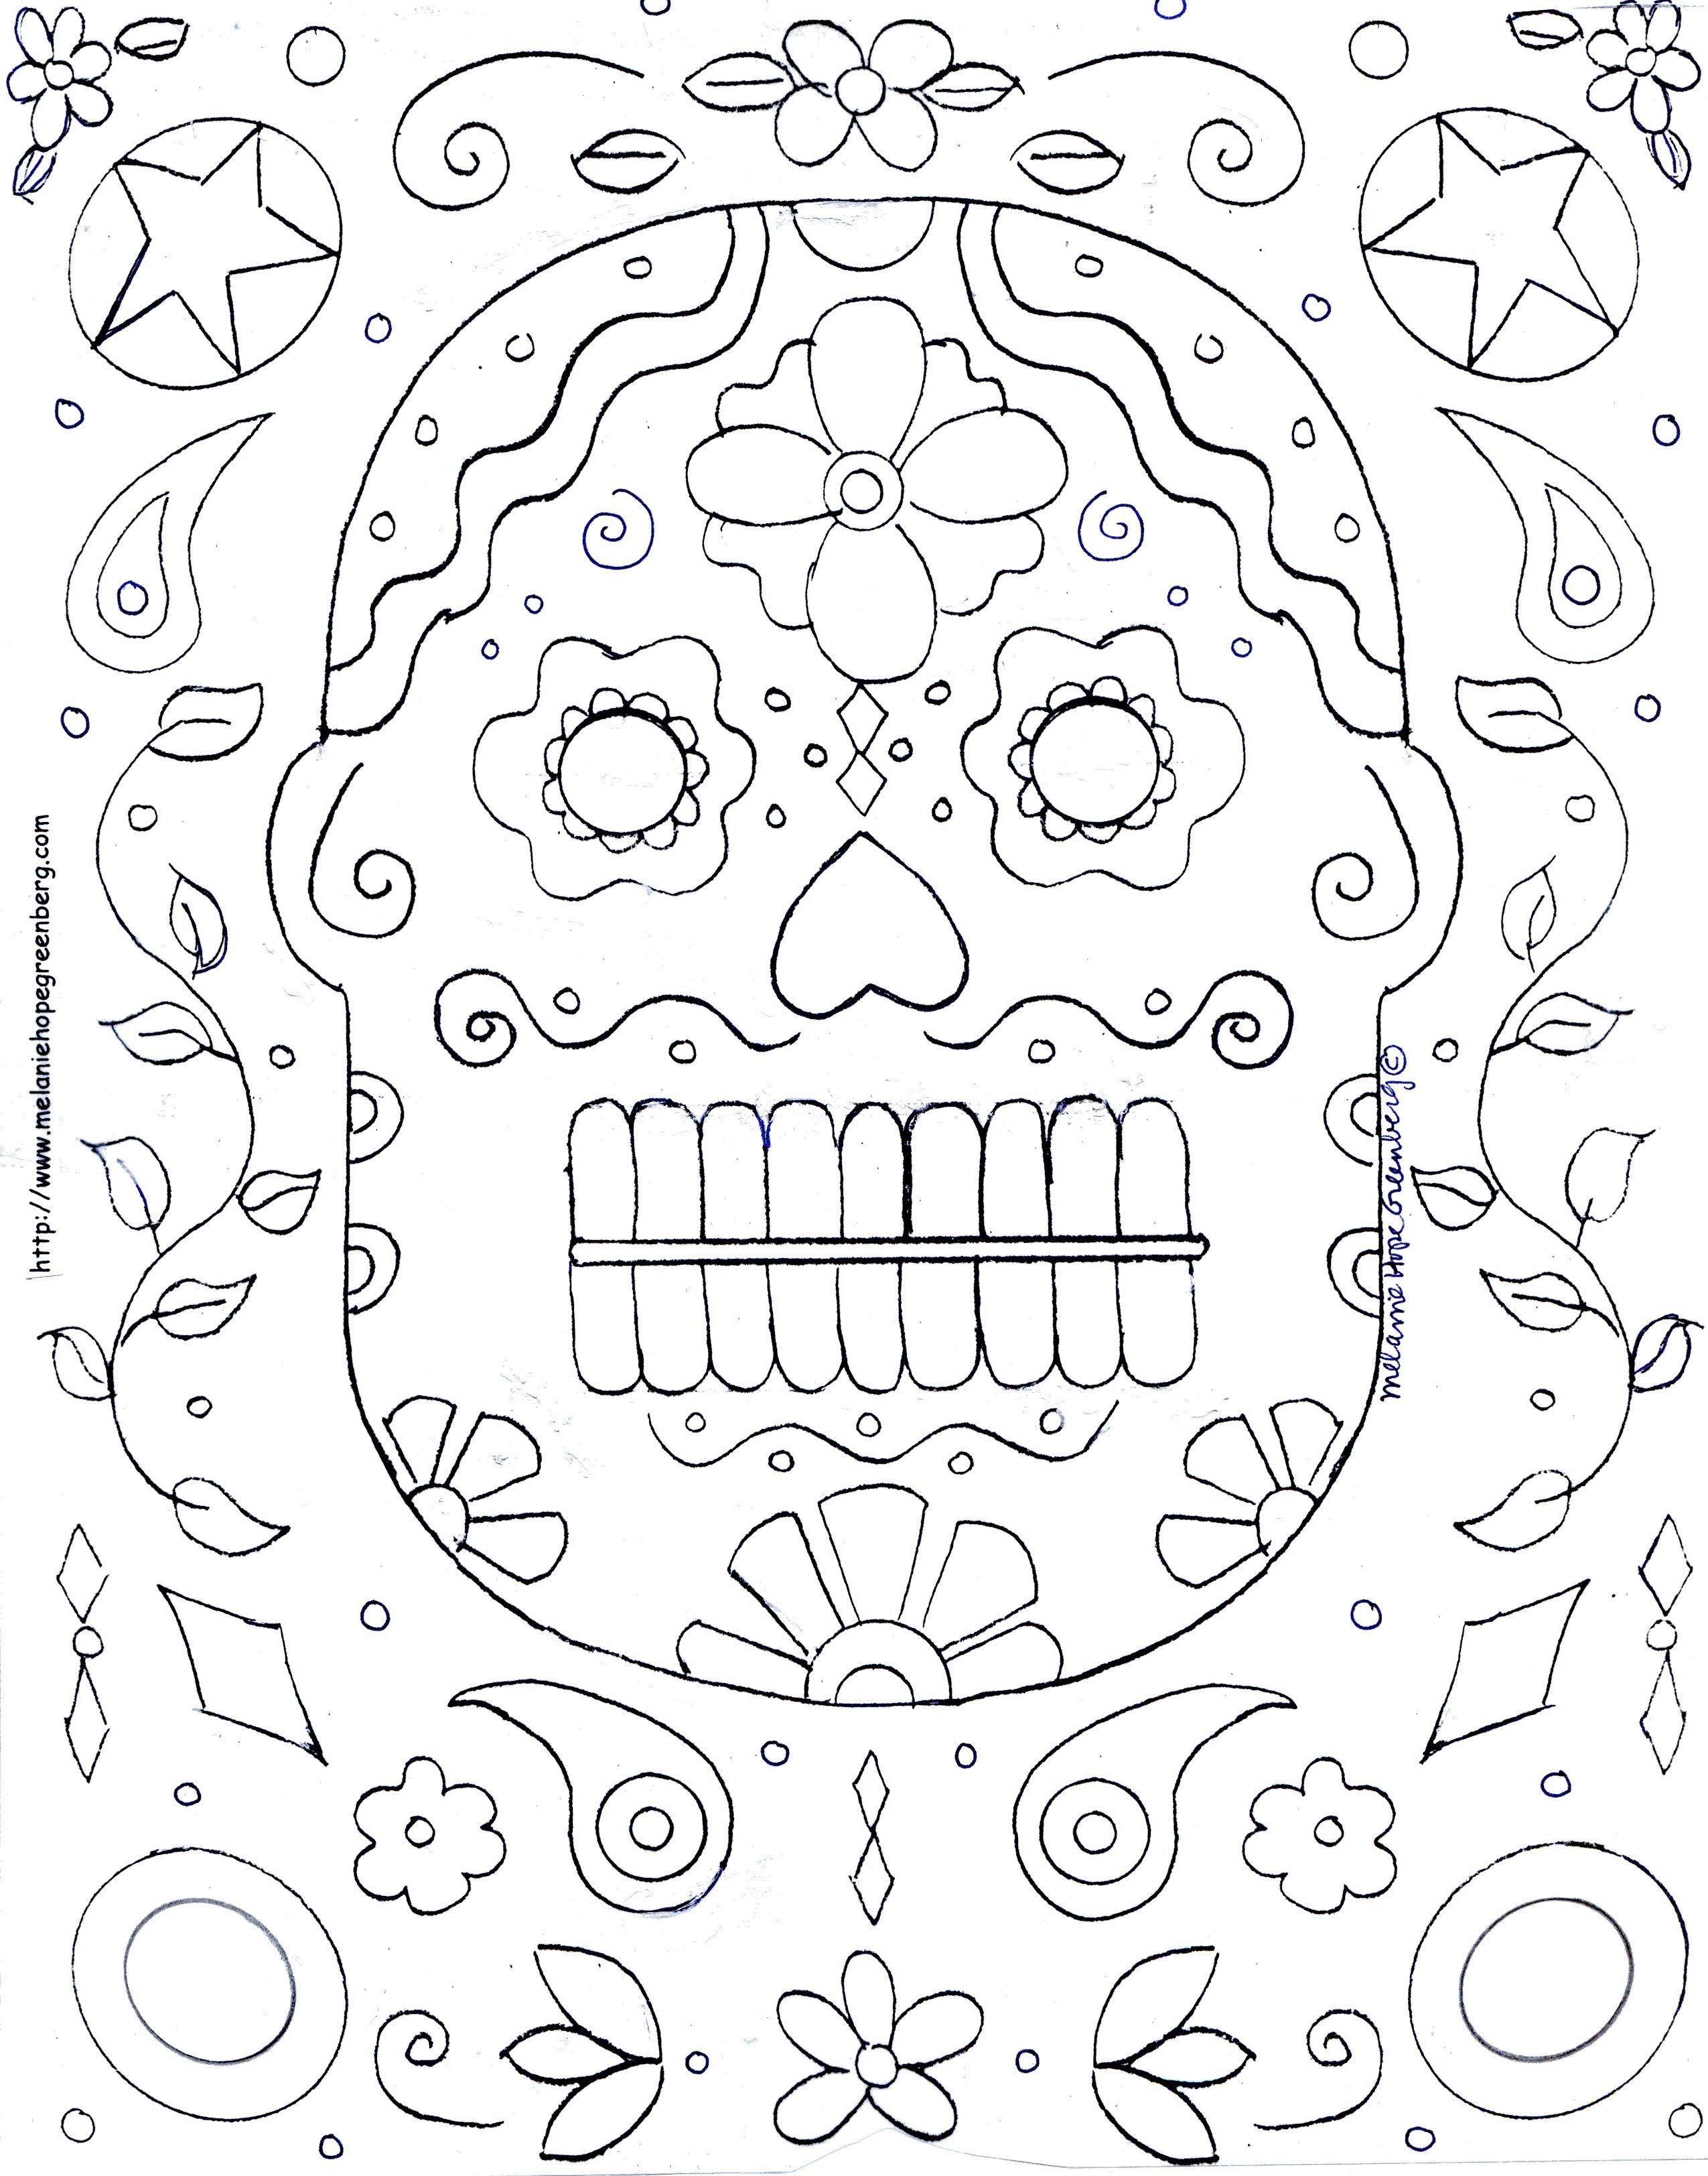 Halloween Mask Coloring Page from kid lit illustrator Melanie Hope